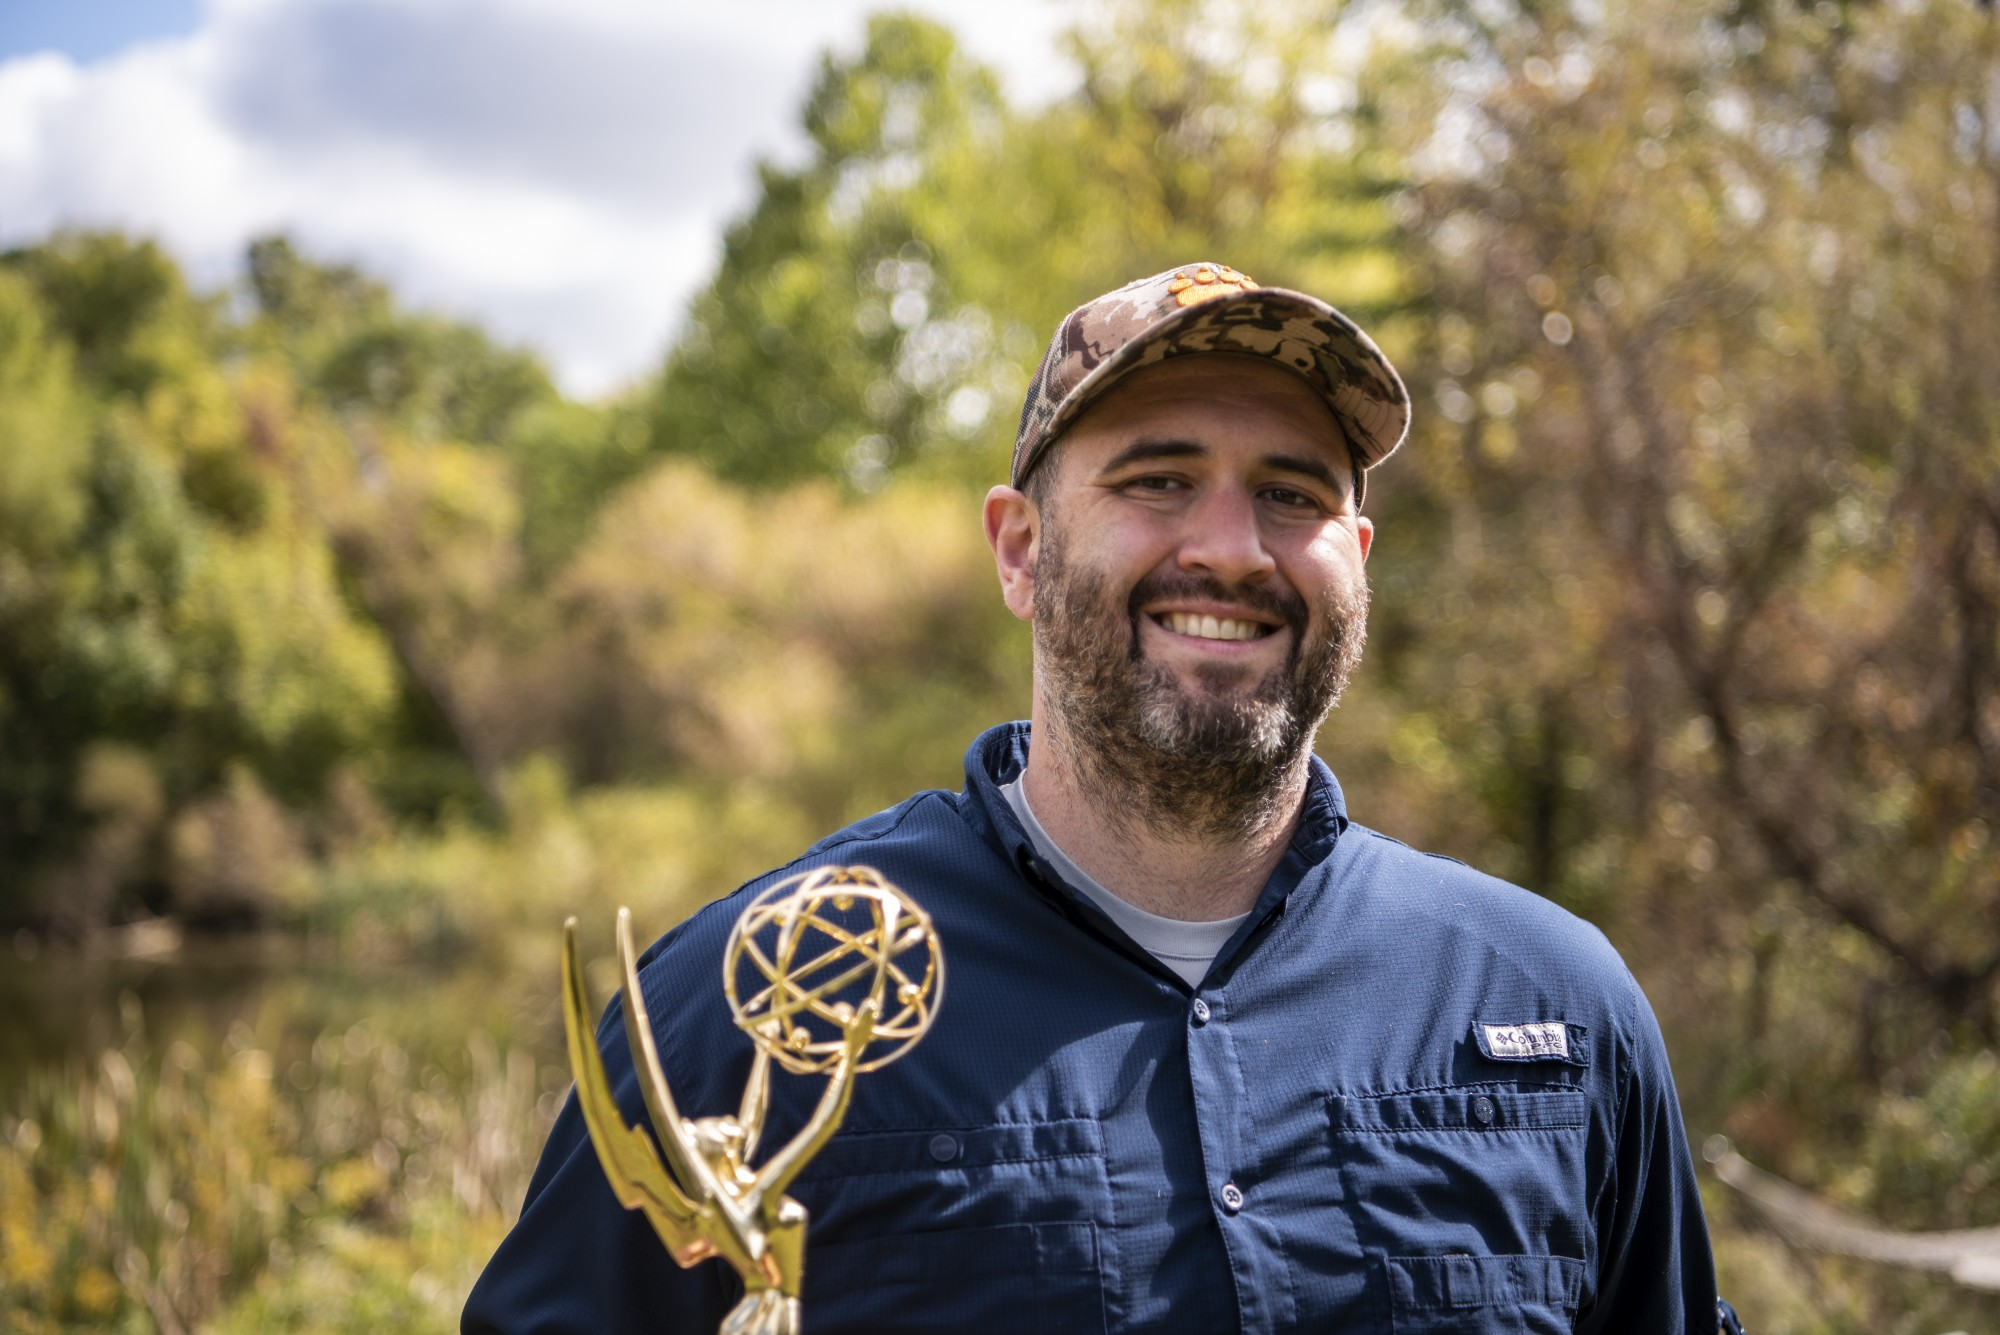 Ten-time Emmy winning filmmaker, Evan Shaw, poses for a portrait in his backyard in Athens, Ohio, with his signature camouflage hat and one of his Emmys.